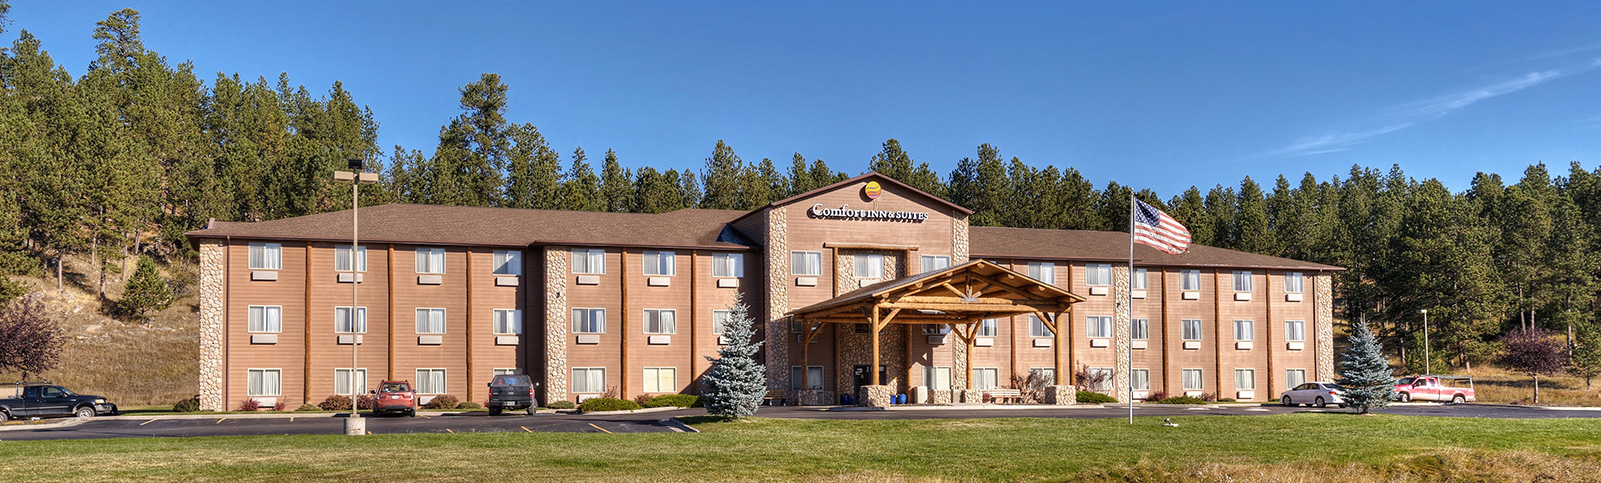 Custer South Dakota Comfort Inn and Suites Exterior